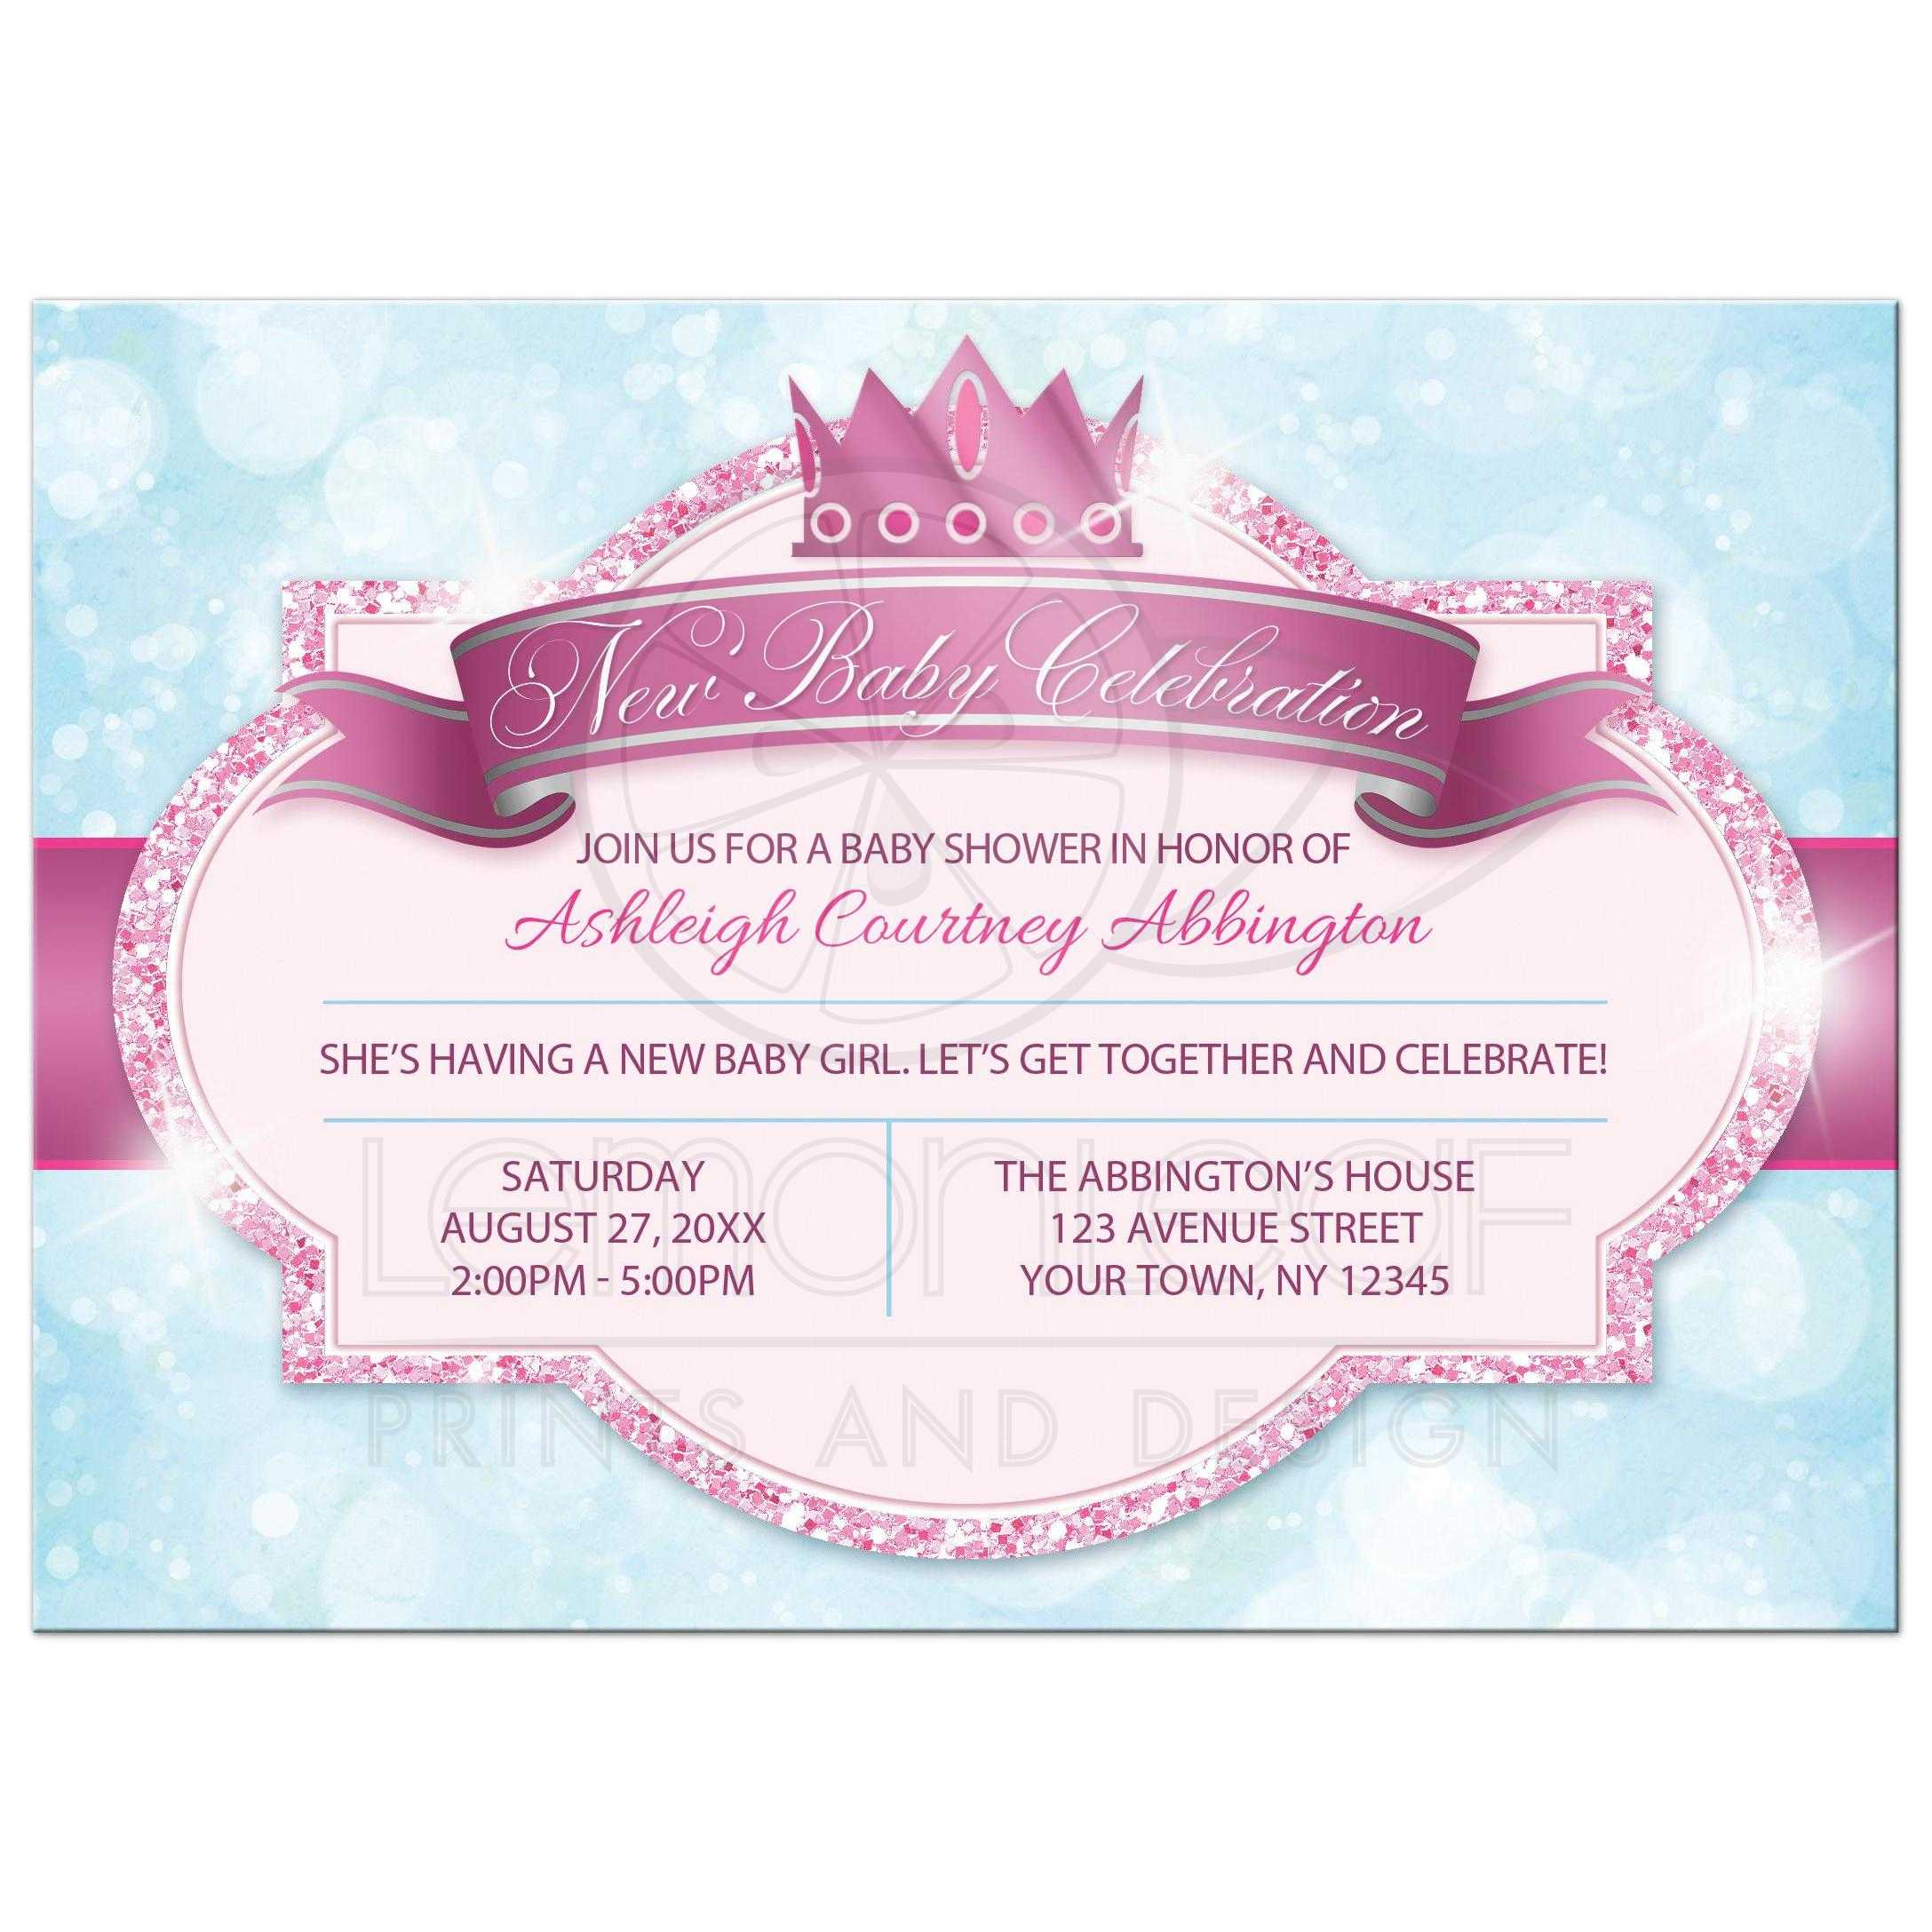 Girls Birthday Invitations for awesome invitation ideas